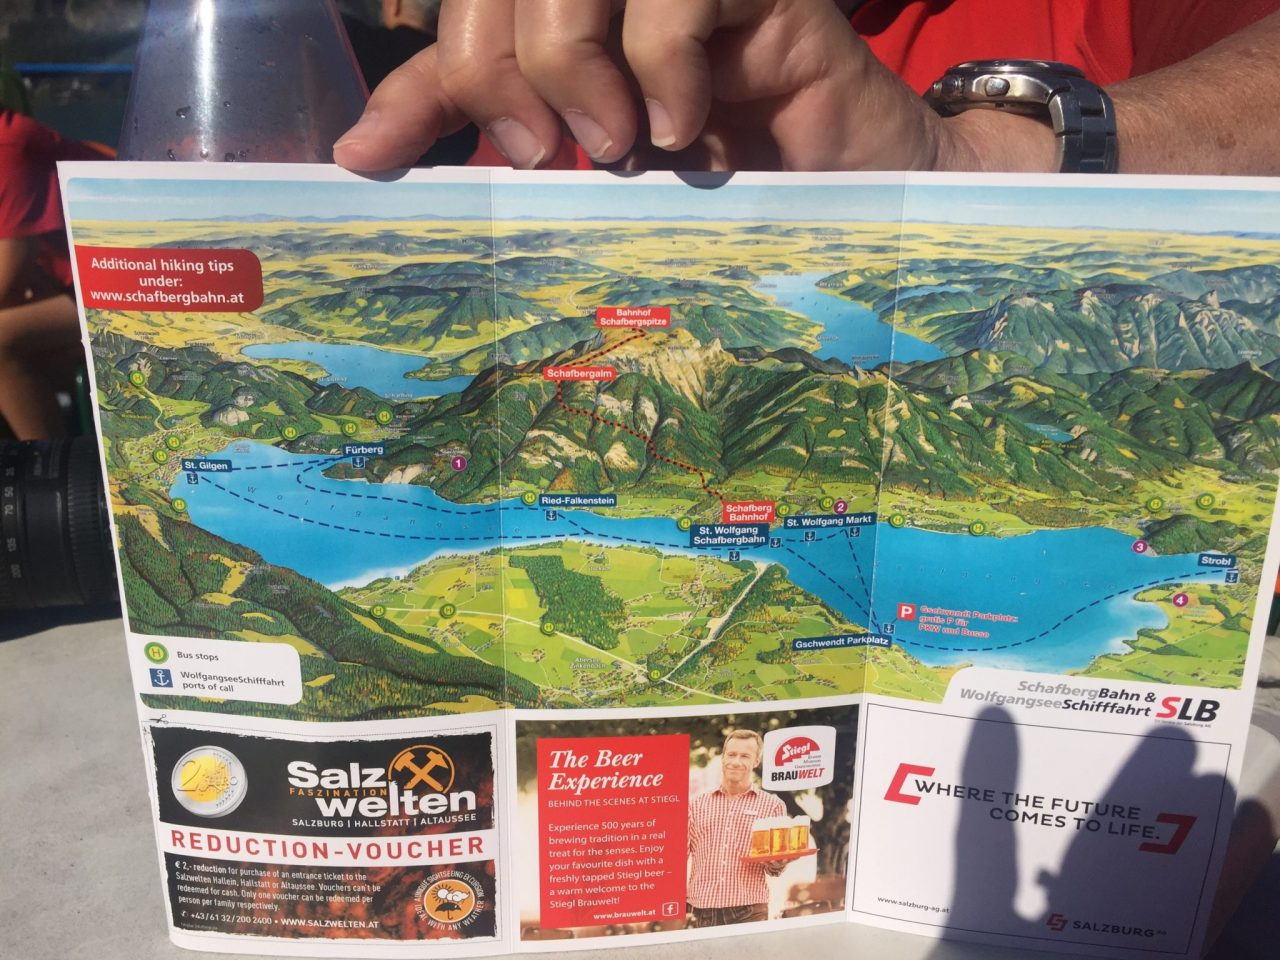 Map of Wolfgangssee, Austria